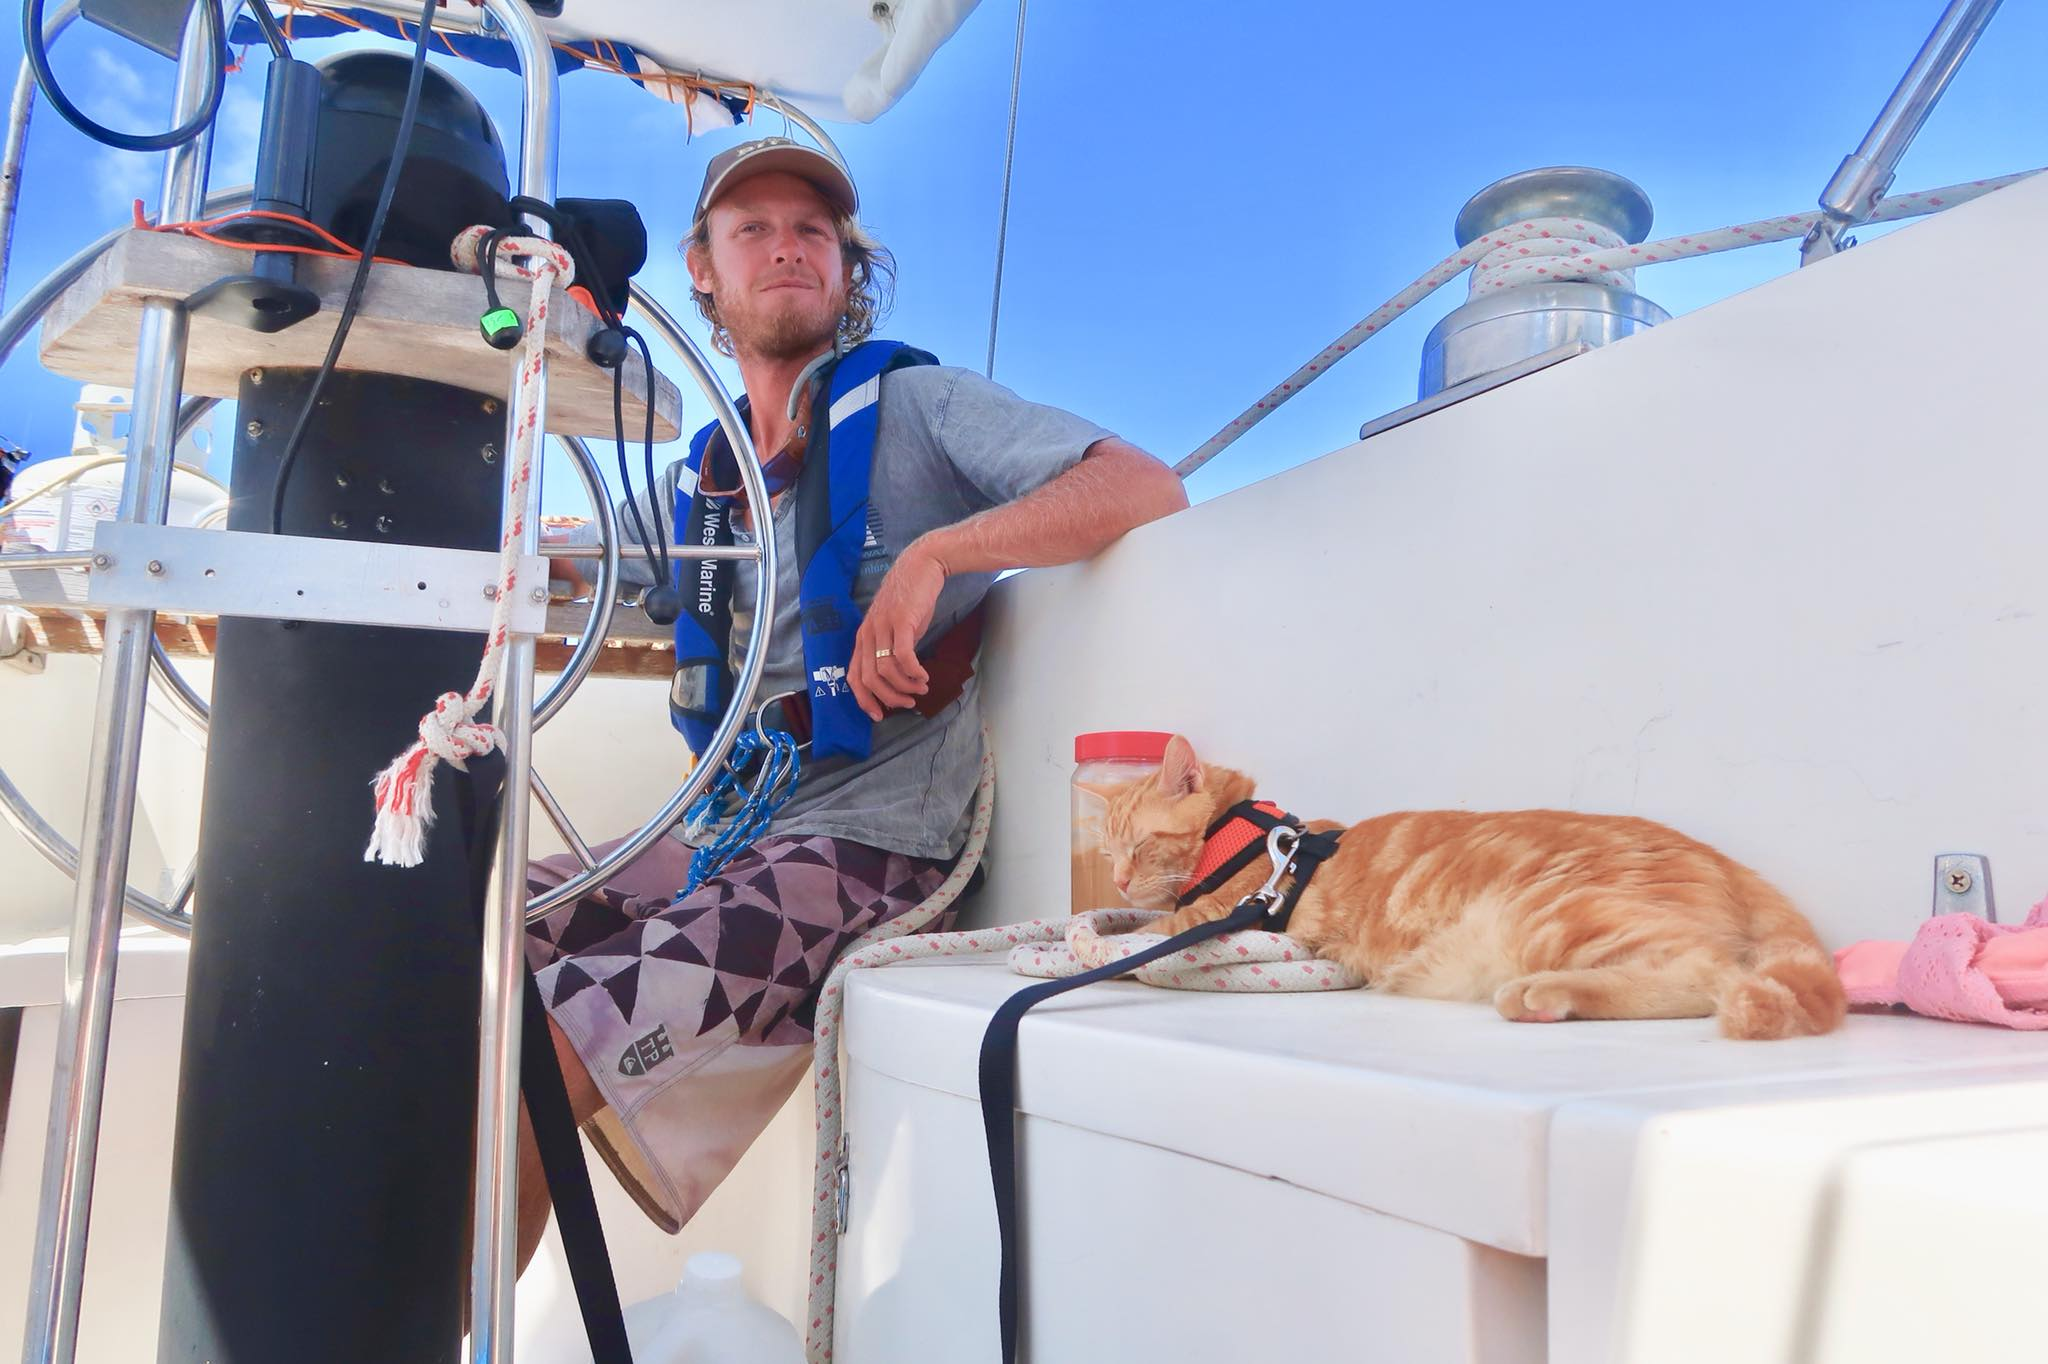 Sailing Life Day 39: Sailing from George Town, Exumas to Calabash Bay, Galliot Cay in Long Island